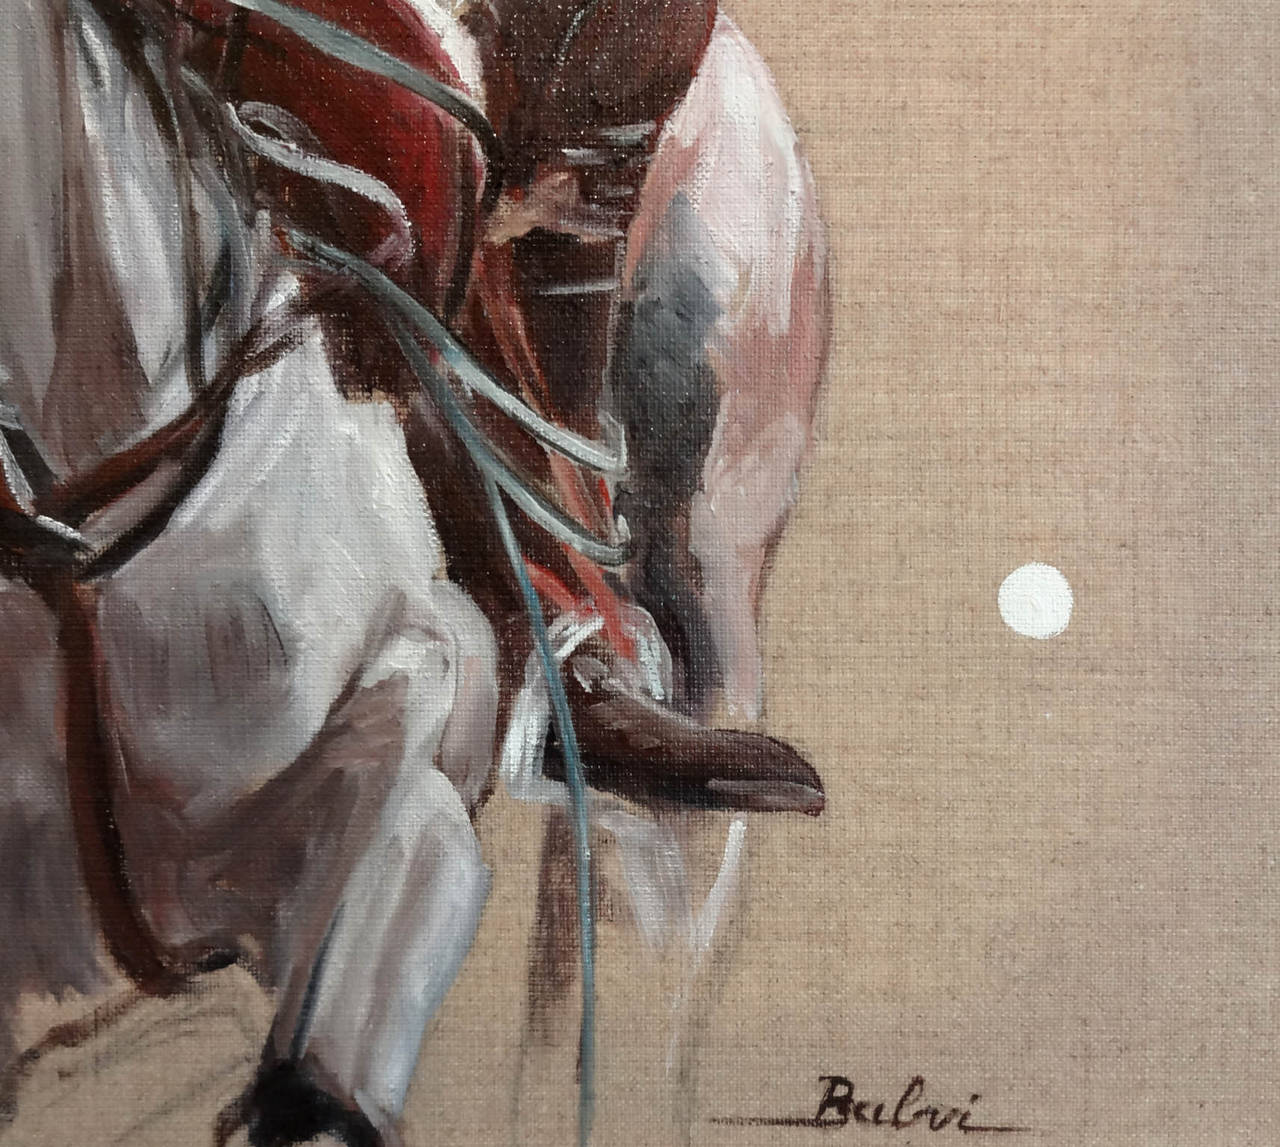 Le Polo Blanc - Painting by Simone Balvi